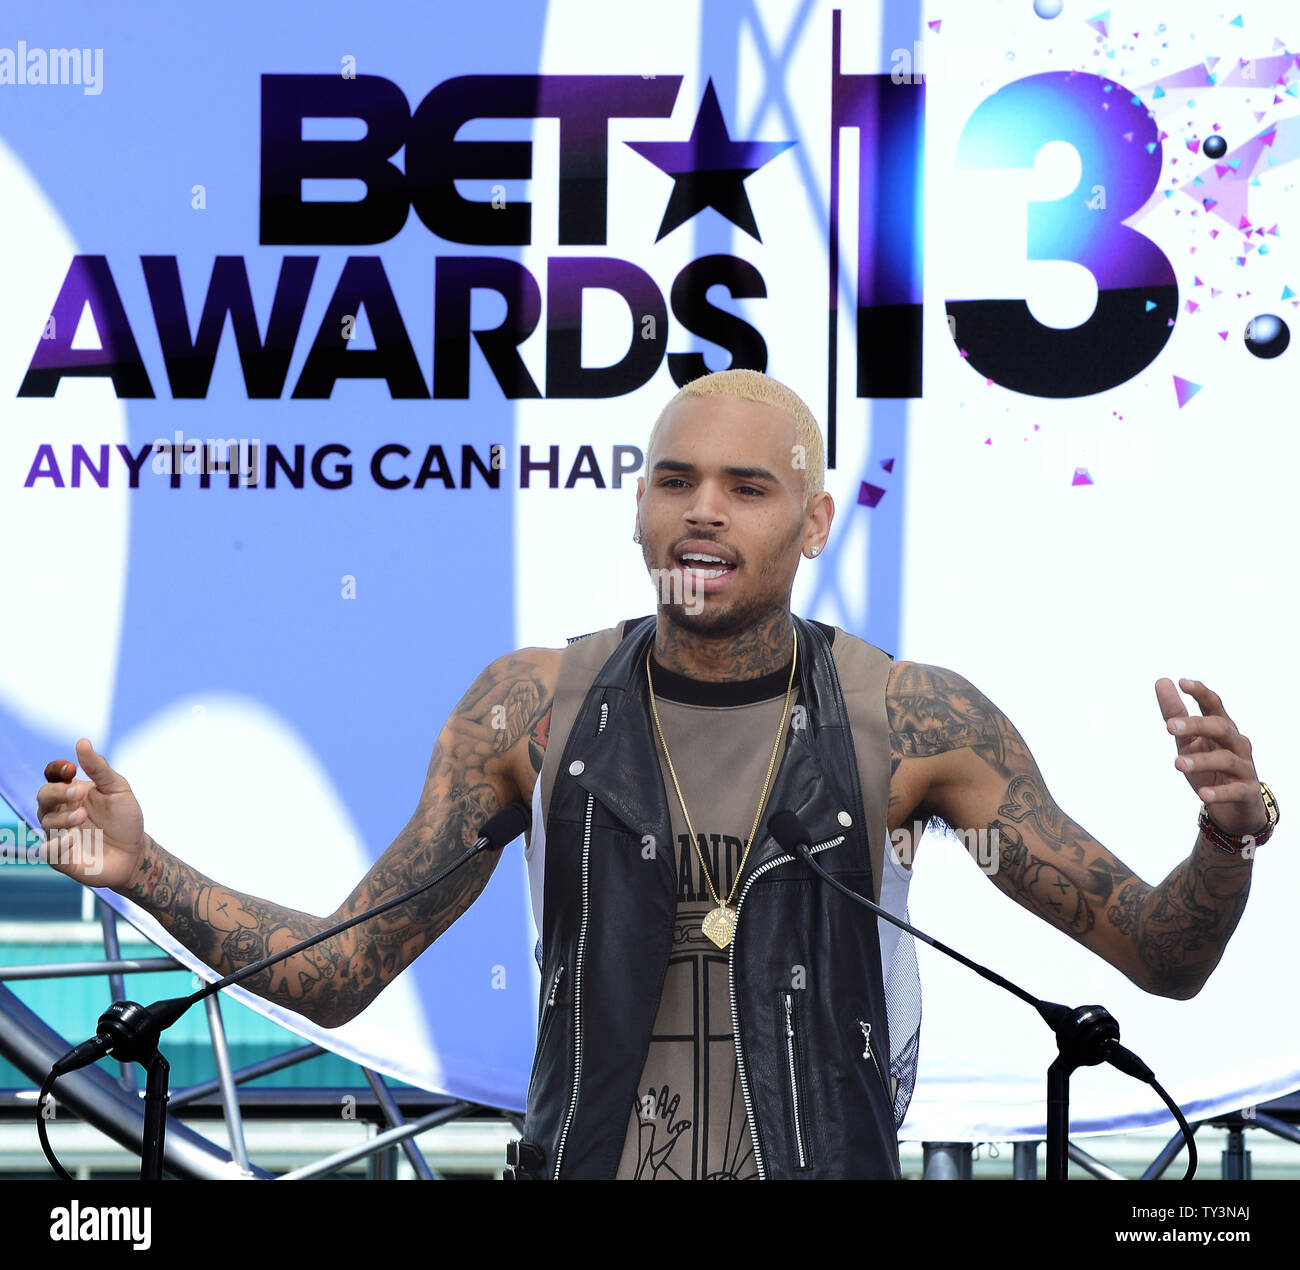 Recording artist Chris Brown participates in a BET Awards news conference at Icon Ultra Lounge in Los Angeles on May 14, 2013.  UPI/Jim Ruymen - Stock Image